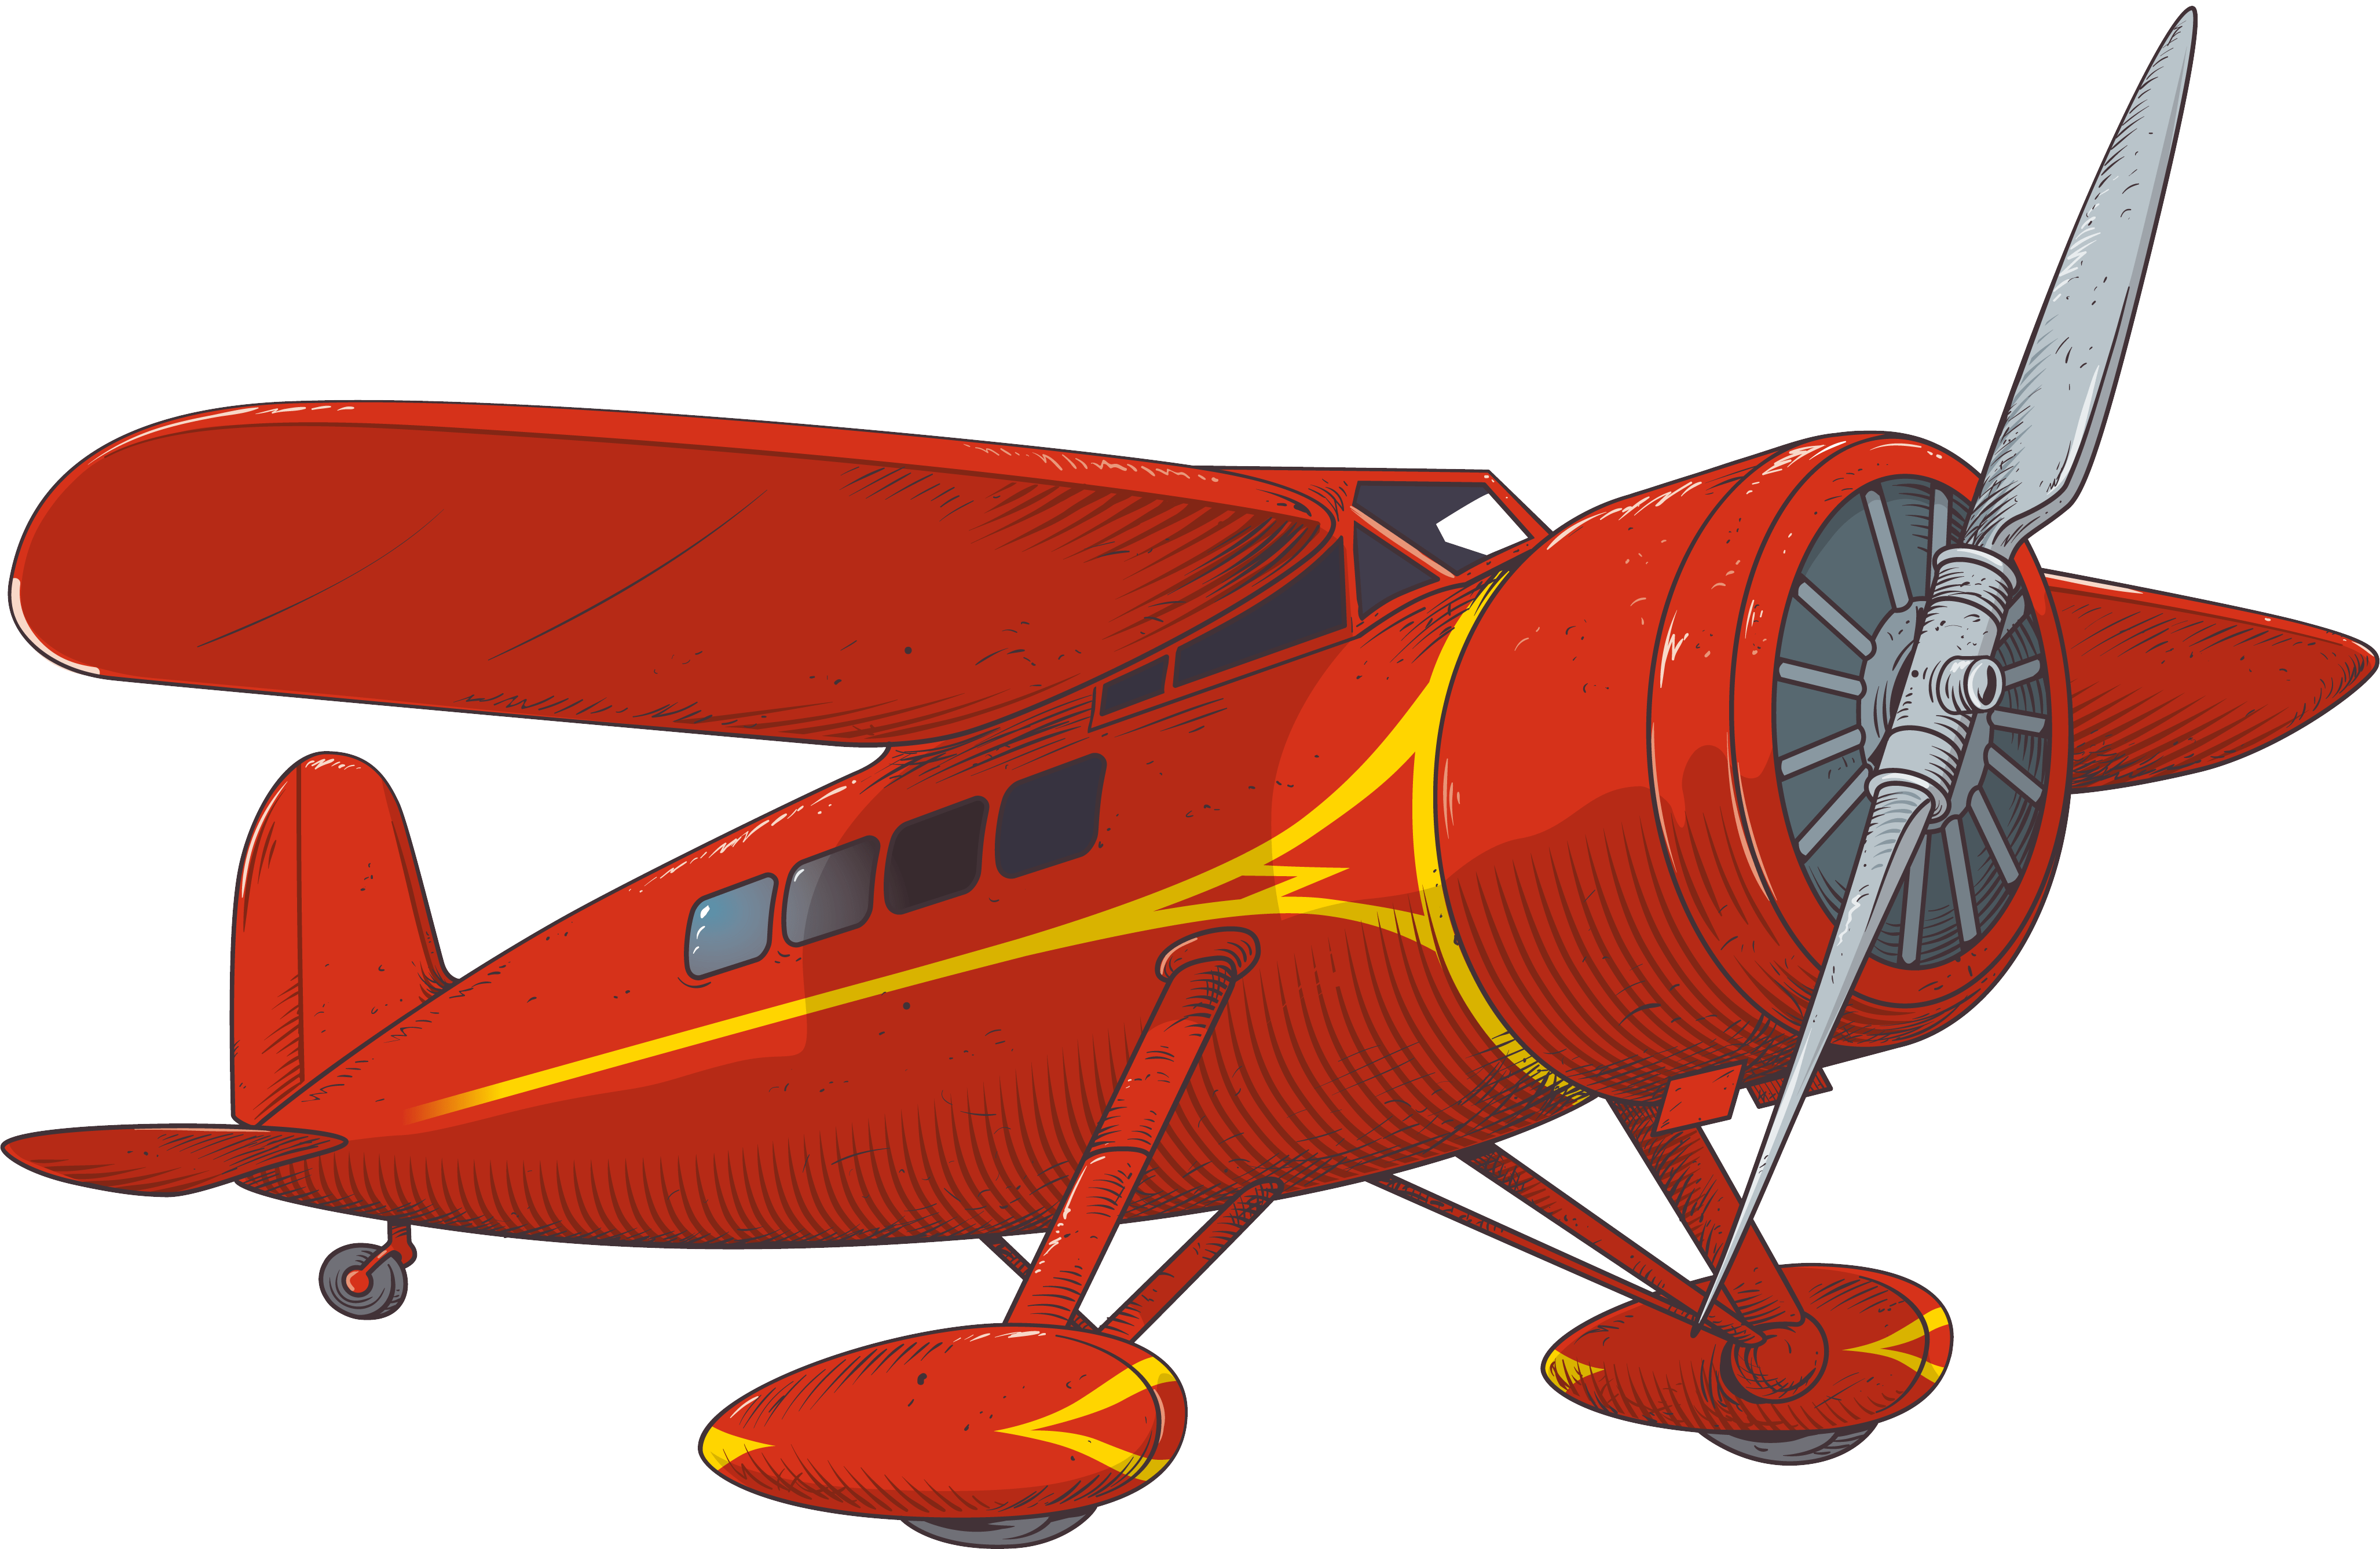 Amelia Earhart S Plane Coloring Page Kids Coloring Pages Download